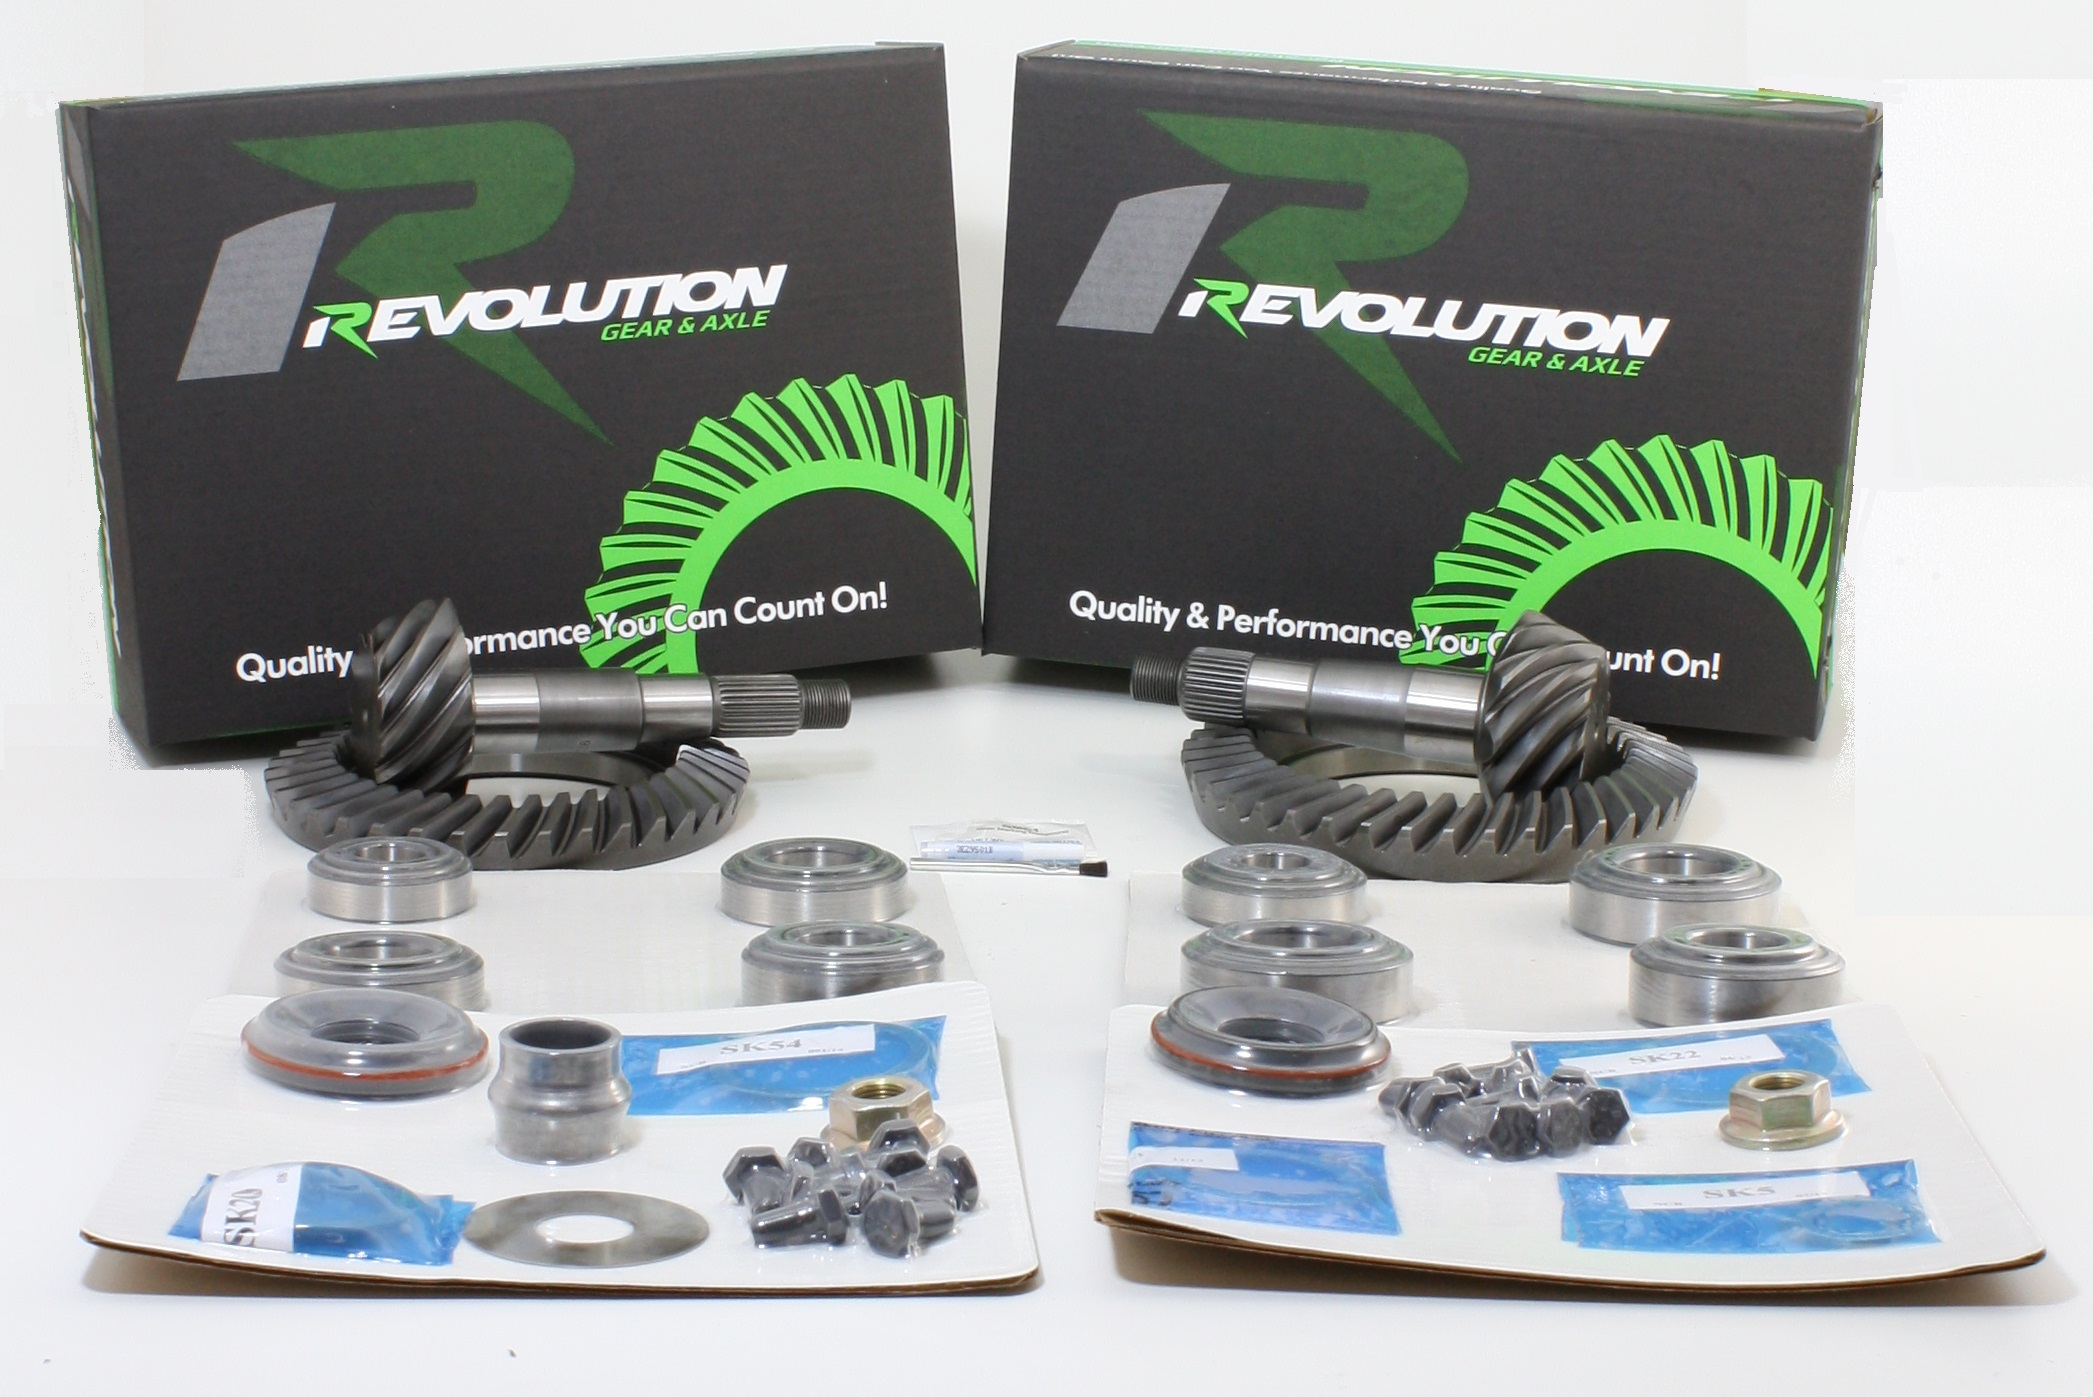 Toyota w/o factory locker 07-09 FJ 05 and Up Tacoma 03-08 4runner (8/8ifs) 4.56 Gear Package front and rear gears and master kits (thick front gear to fit 3.73 and down case) Revolution Gear